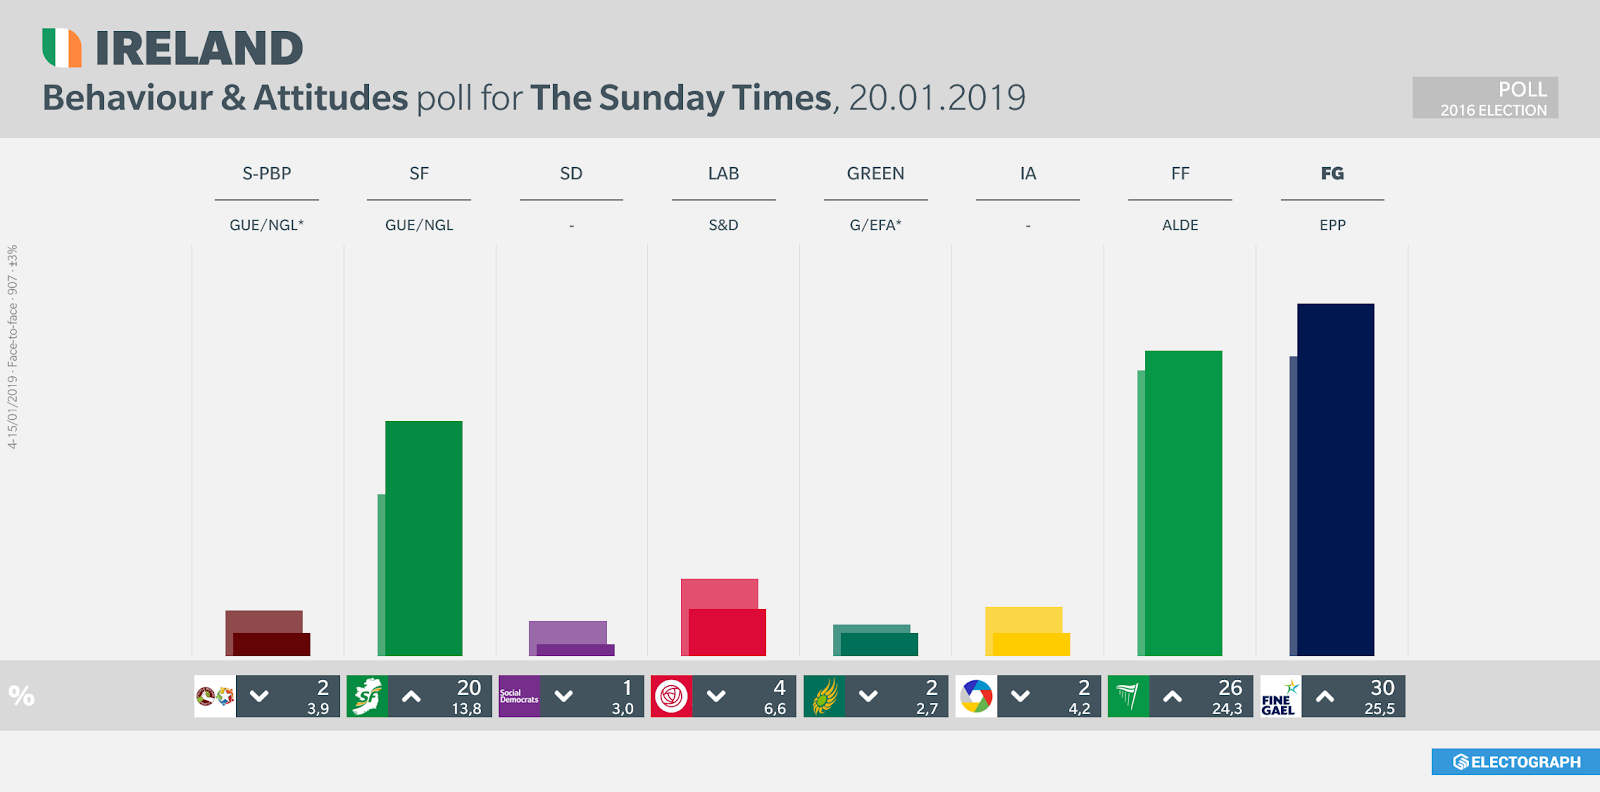 IRELAND: Behaviour & Attitudes poll chart for The Sunday Times, 20 January 2019